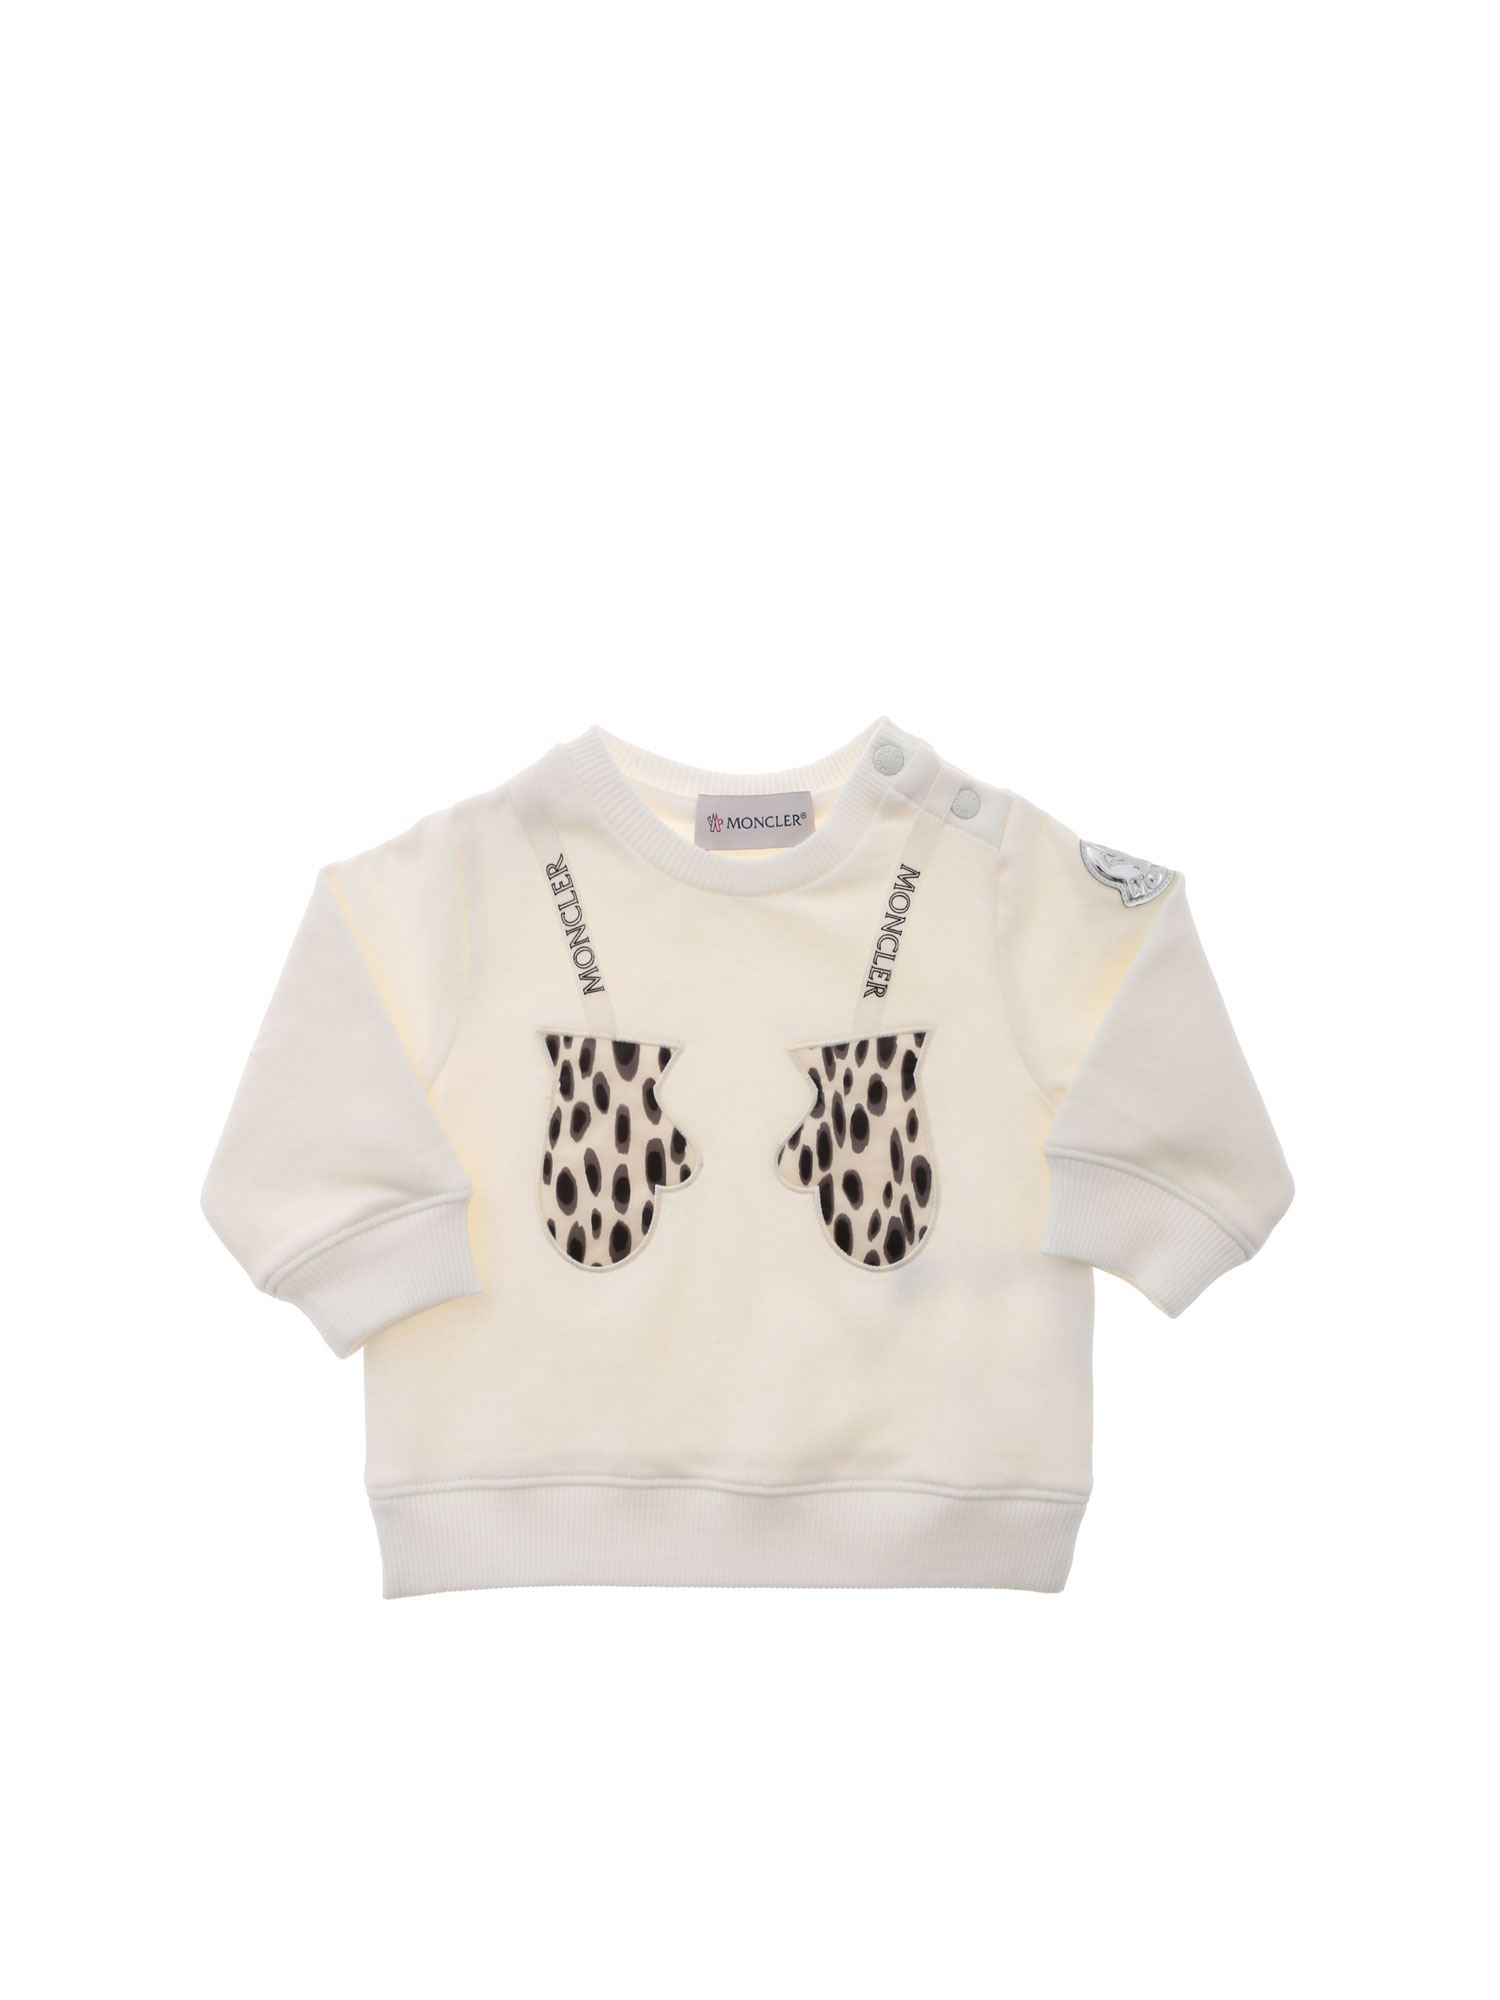 MONCLER JR Cottons ANIMAL PRINT PATCH SWEATSHIRT IN IVORY COLOR